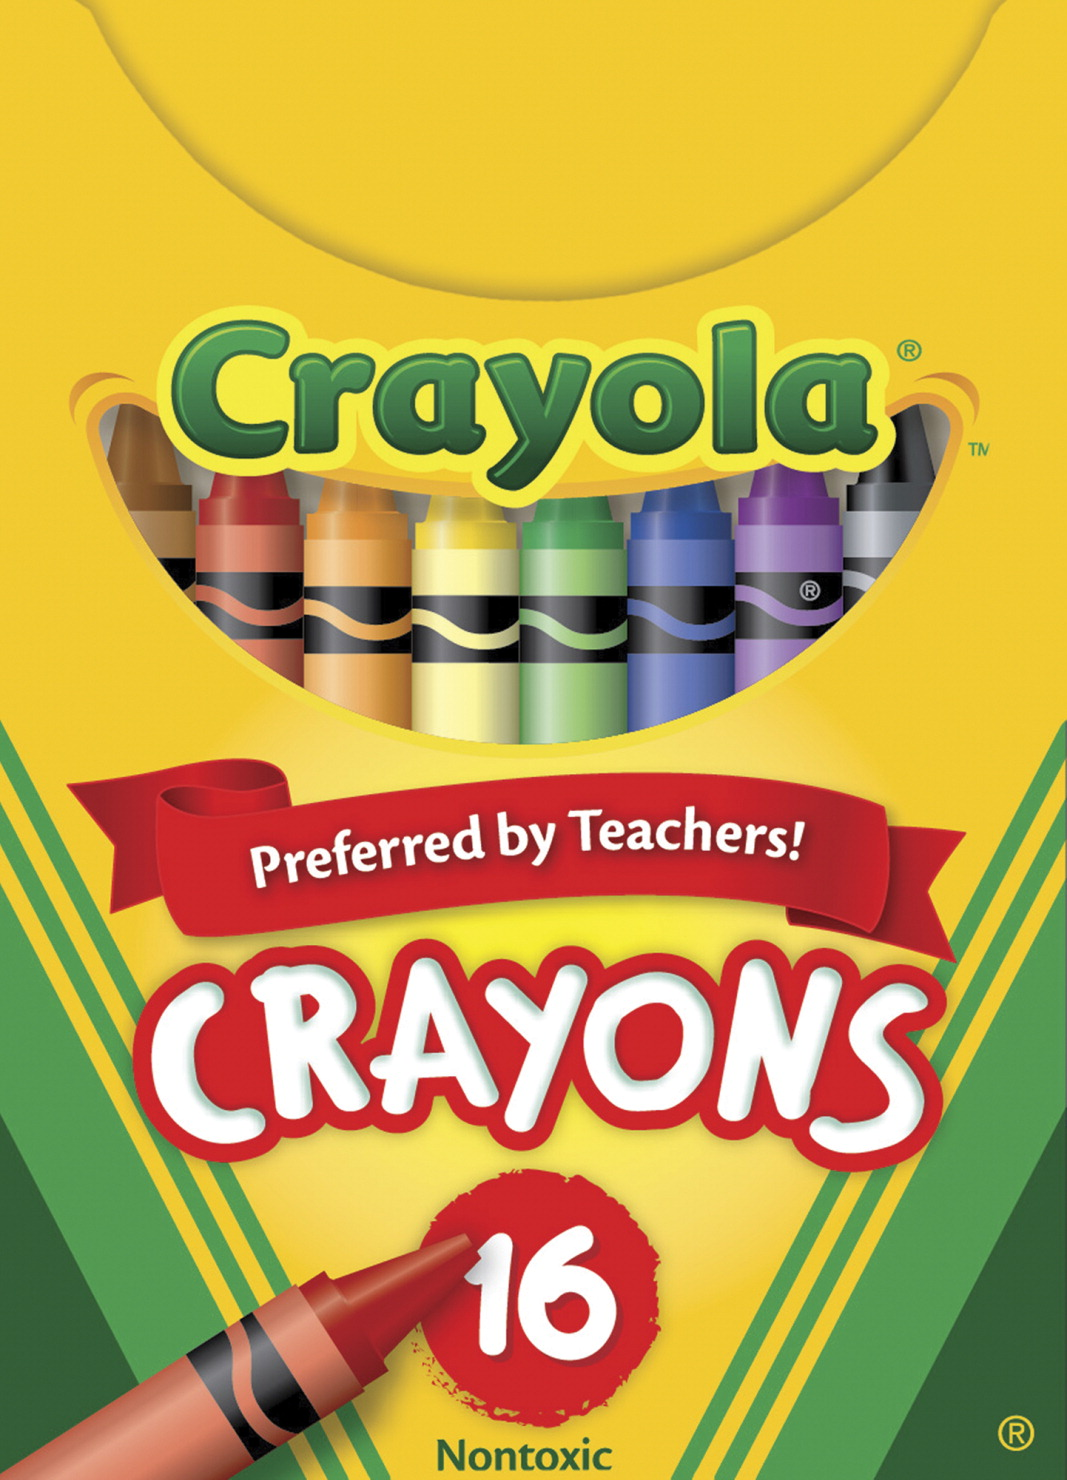 Crayola Standard Size Crayons in Tuck Box, Assorted Colors, Set of 16